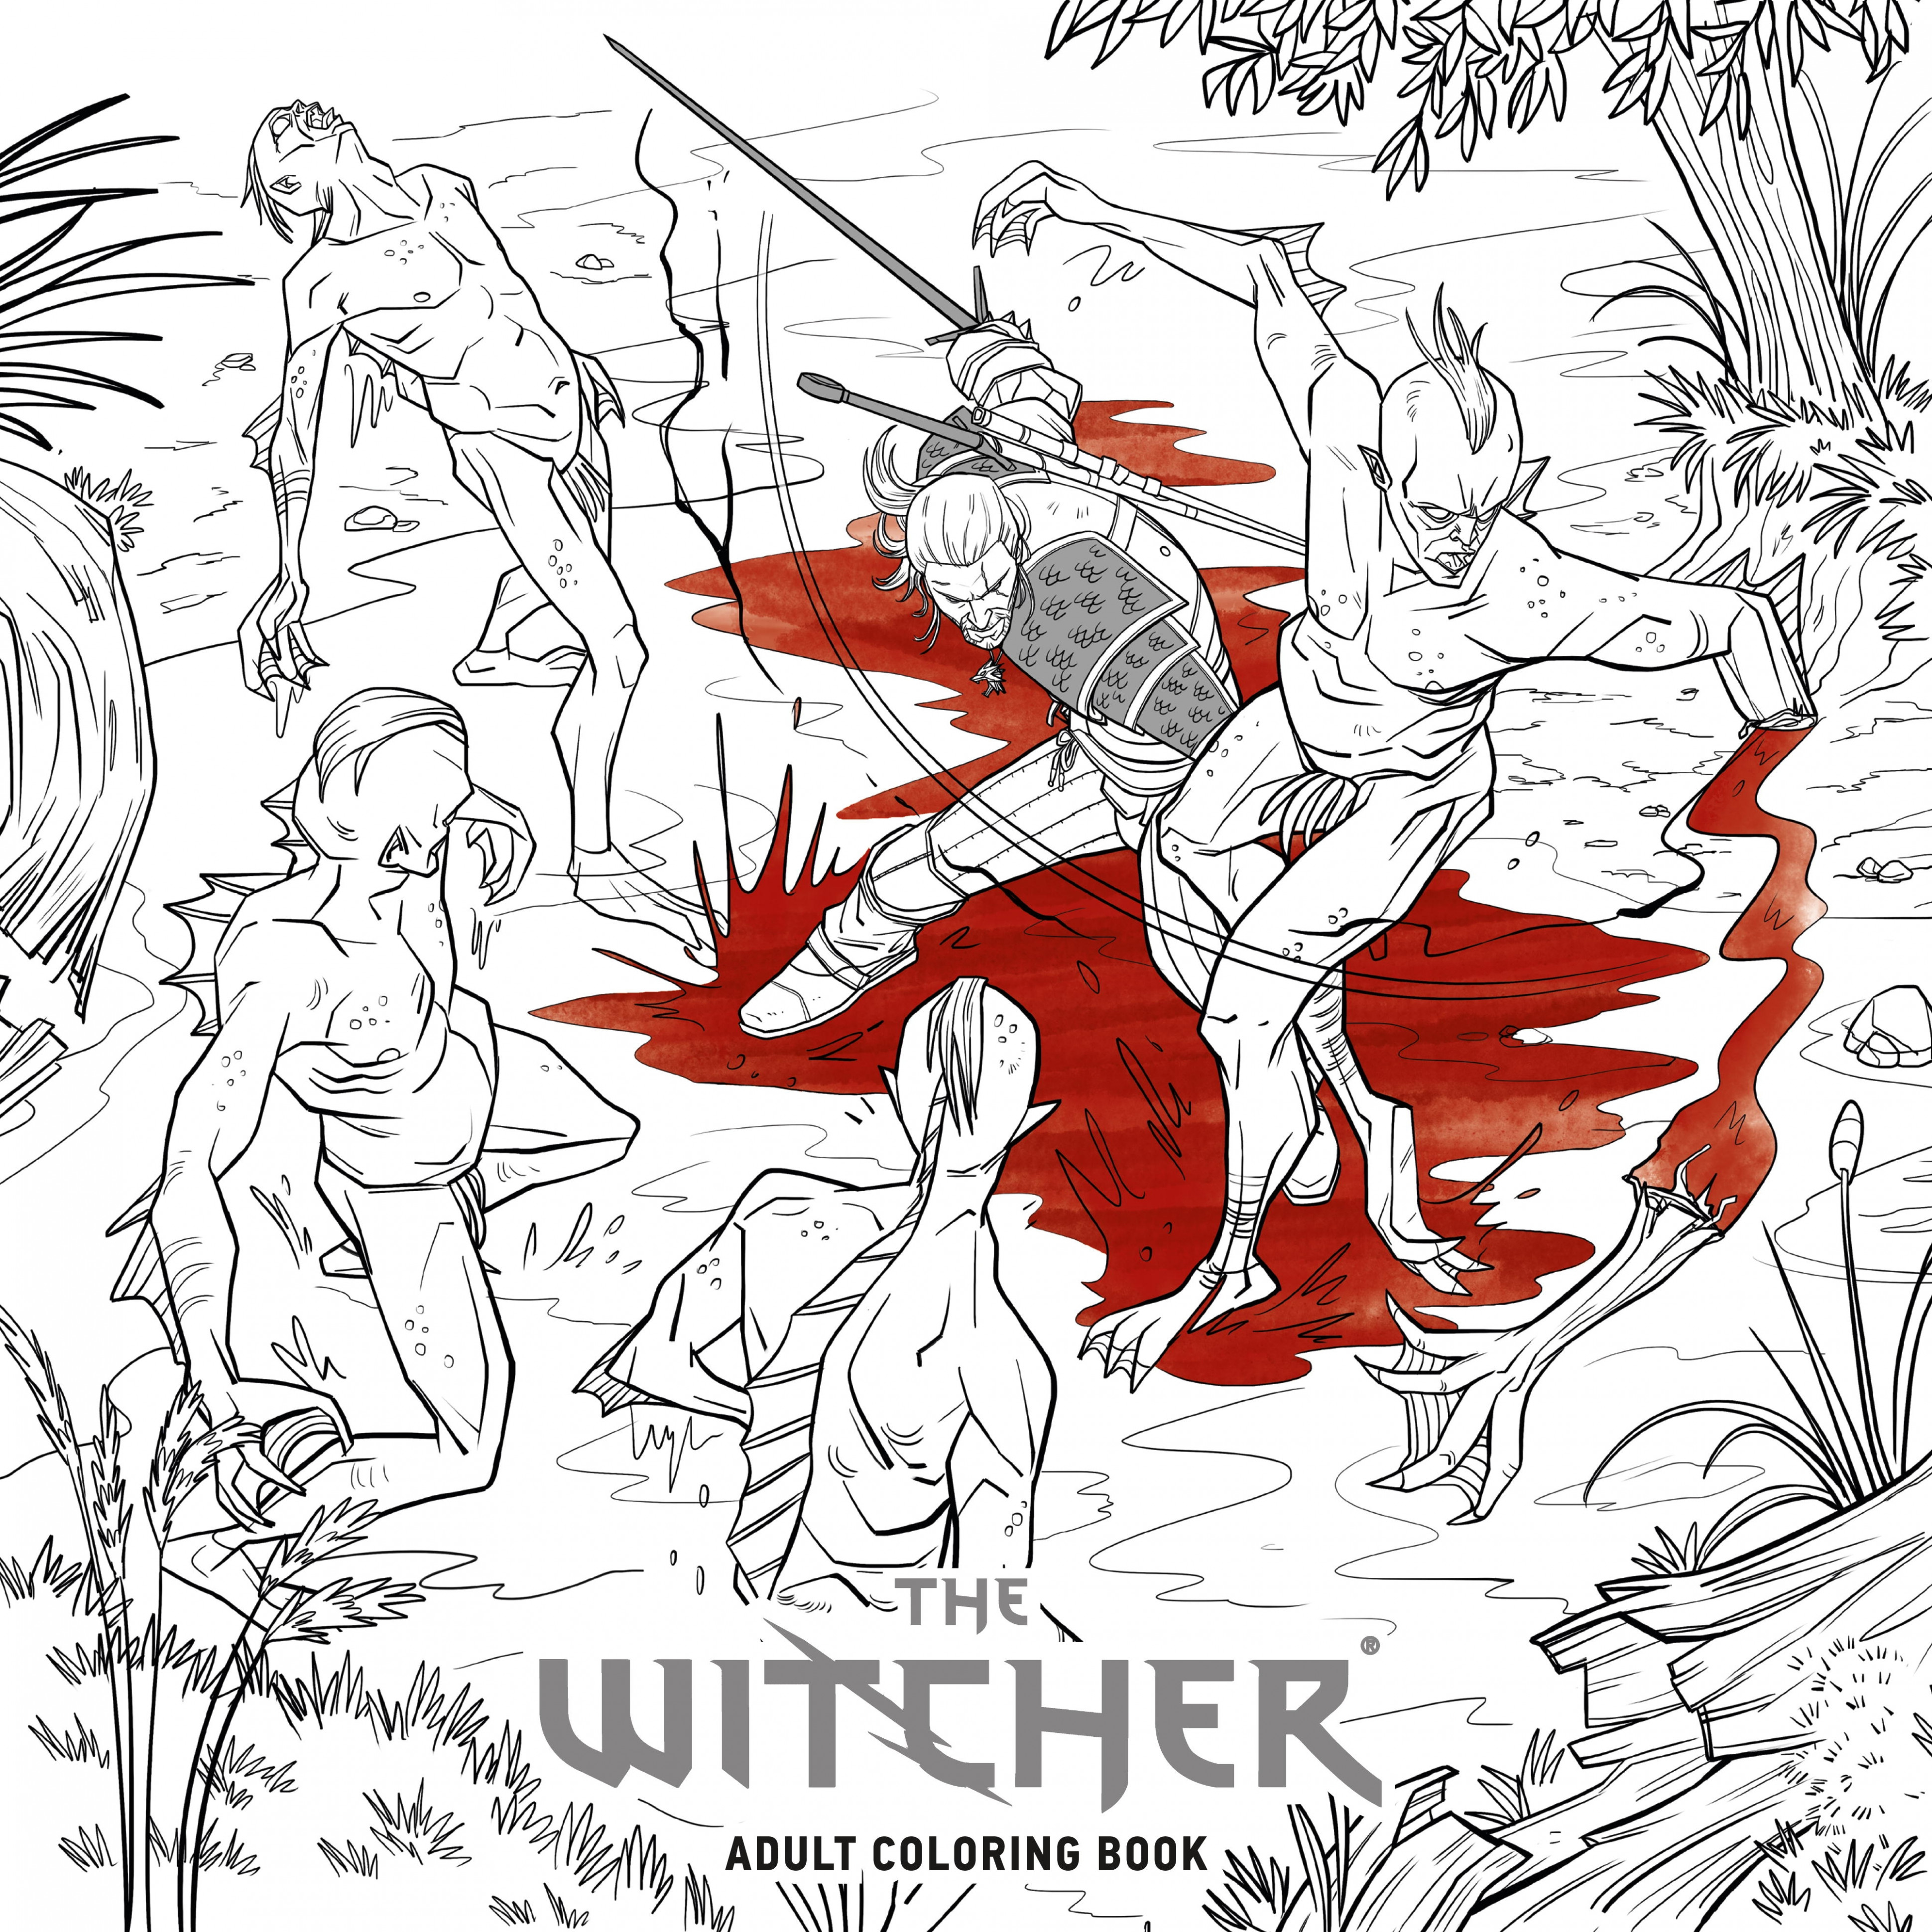 The Witcher Adult Coloring Book by CD PROJEKT RED – Penguin Books ..